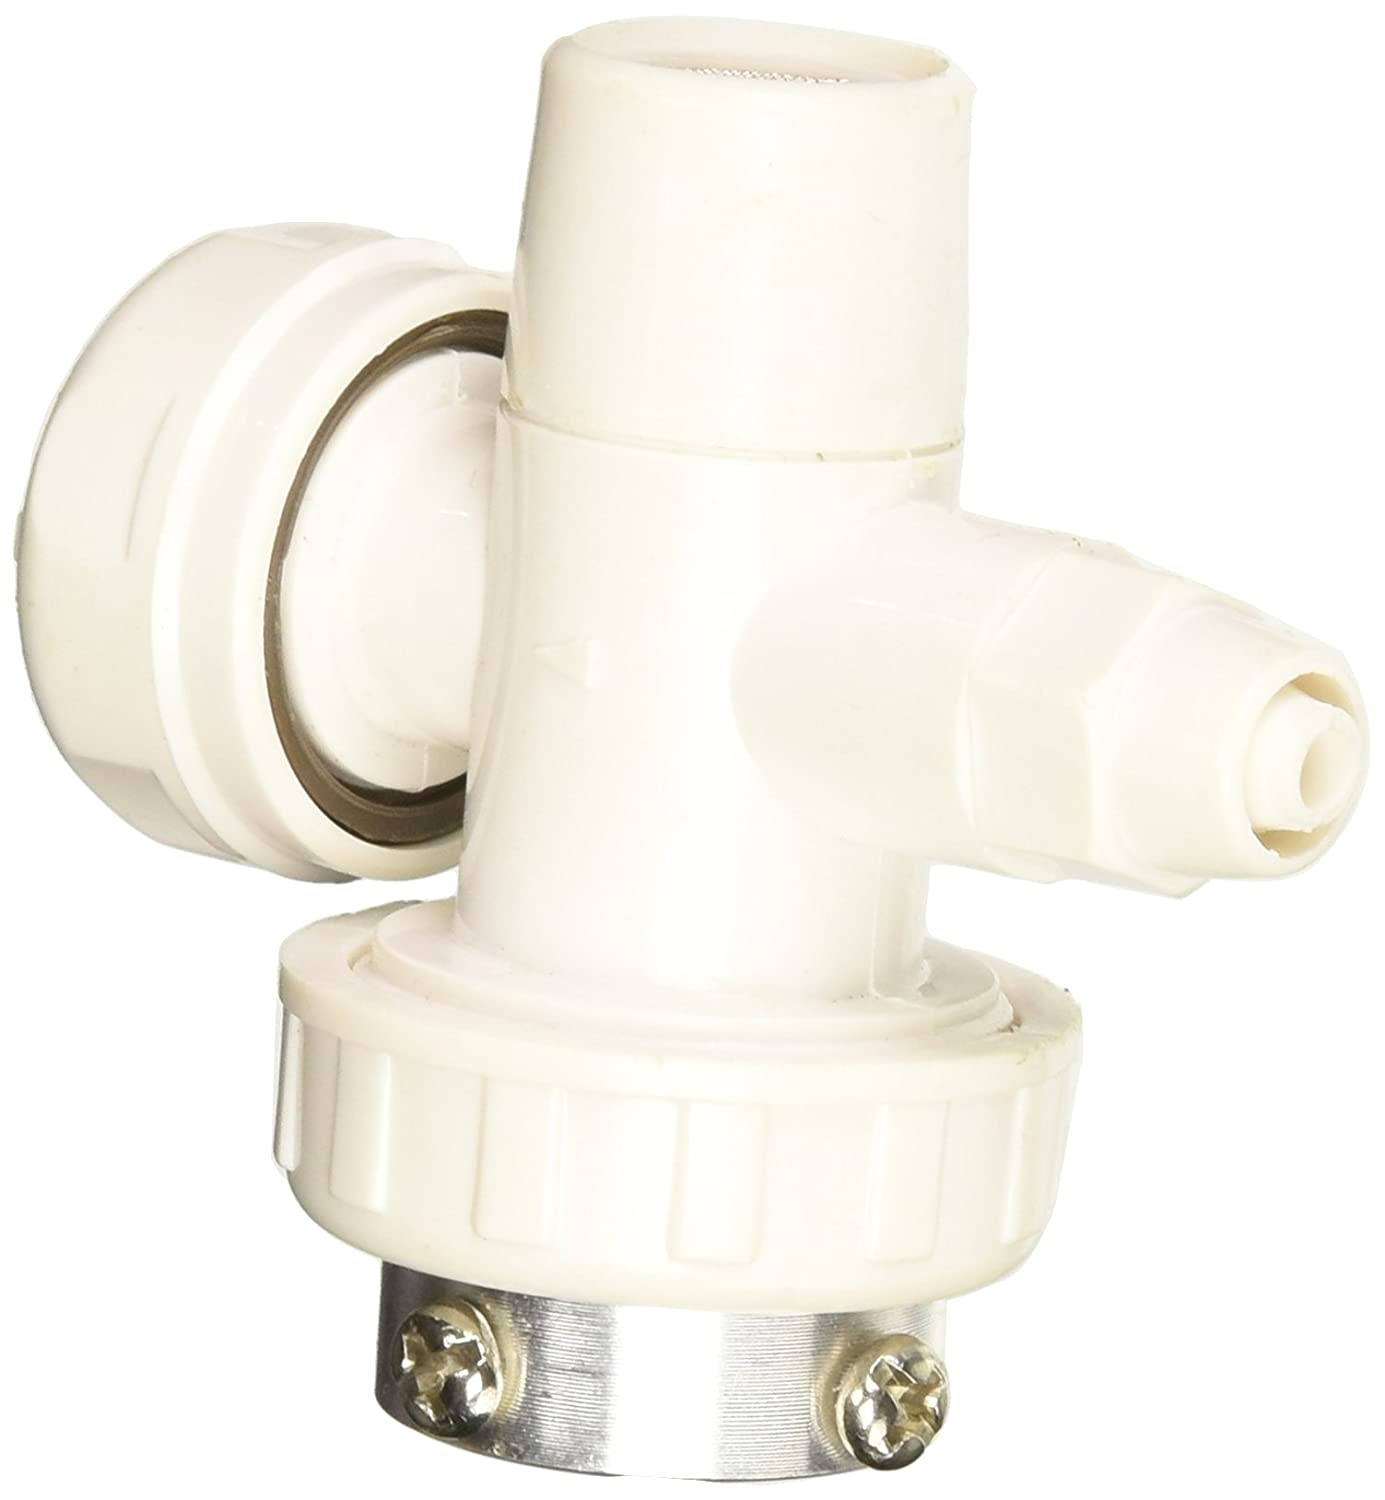 White Dragonmarts Co White // Uxcell a12080800ux0701 Ltd Uxcell Plastic Kitchen Cartridge Tap Water Purifier Filter